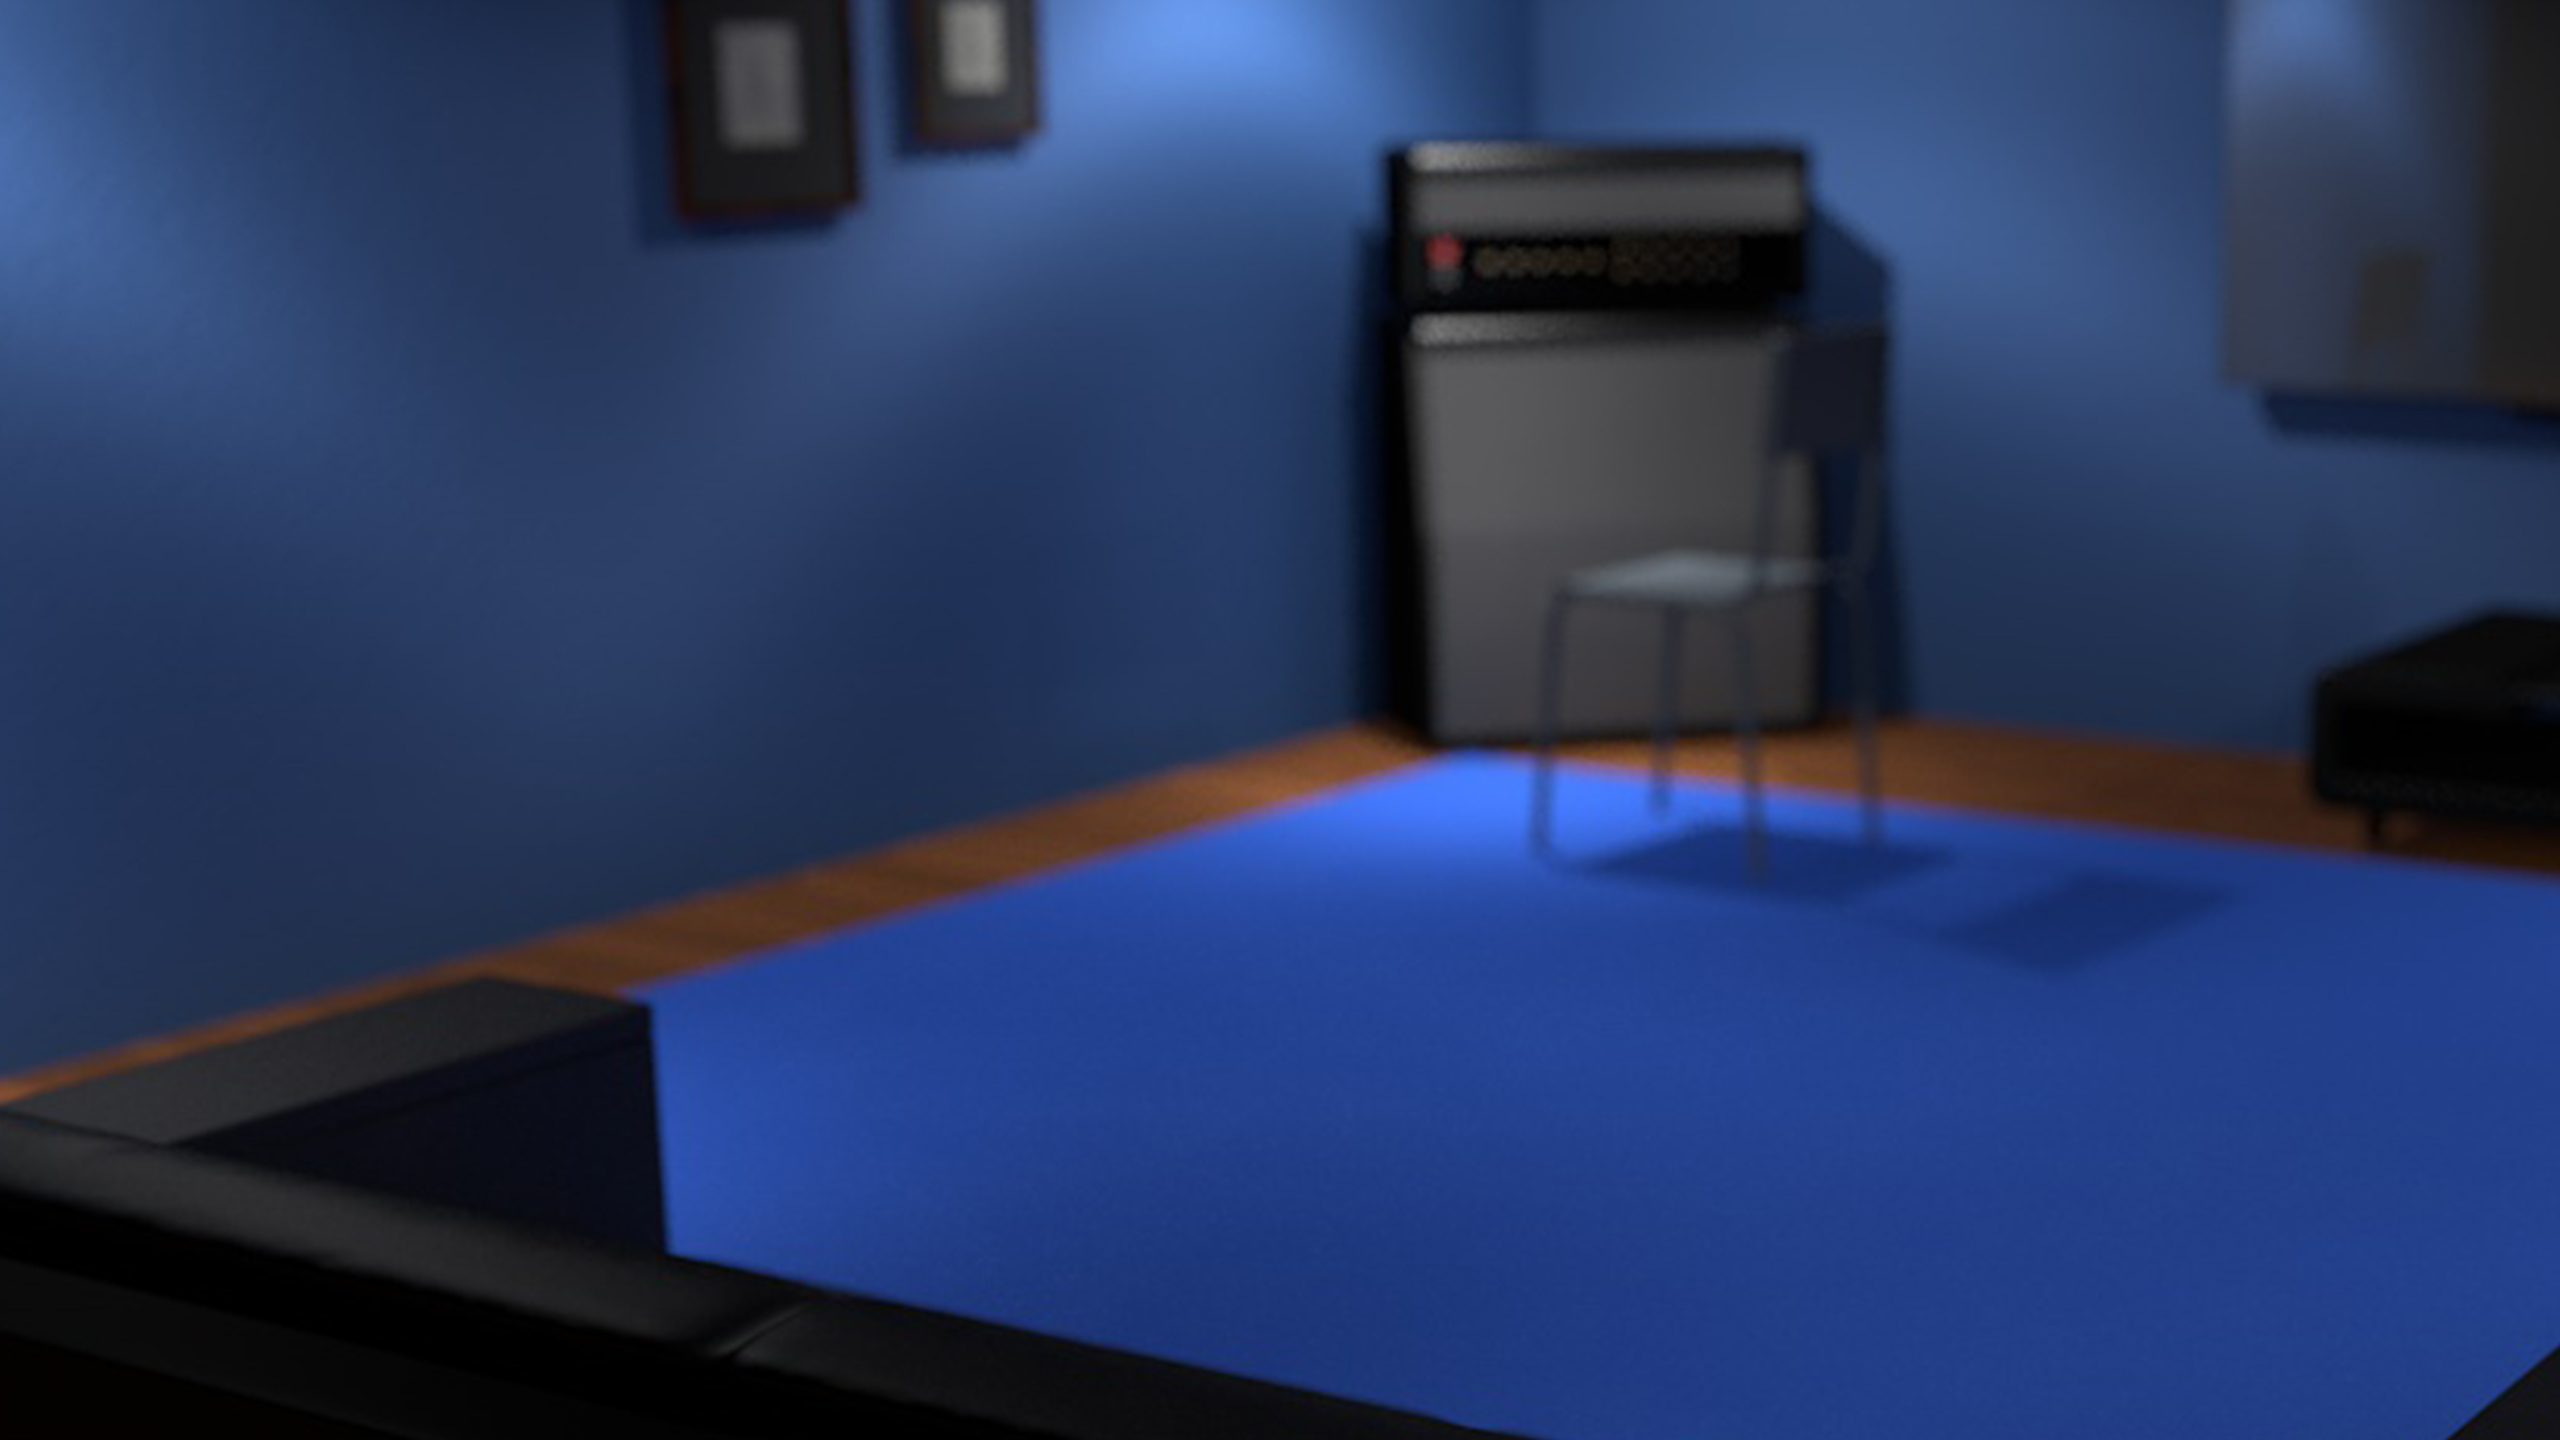 Blue room with couch, amp, rug. Made in Cinema 4d